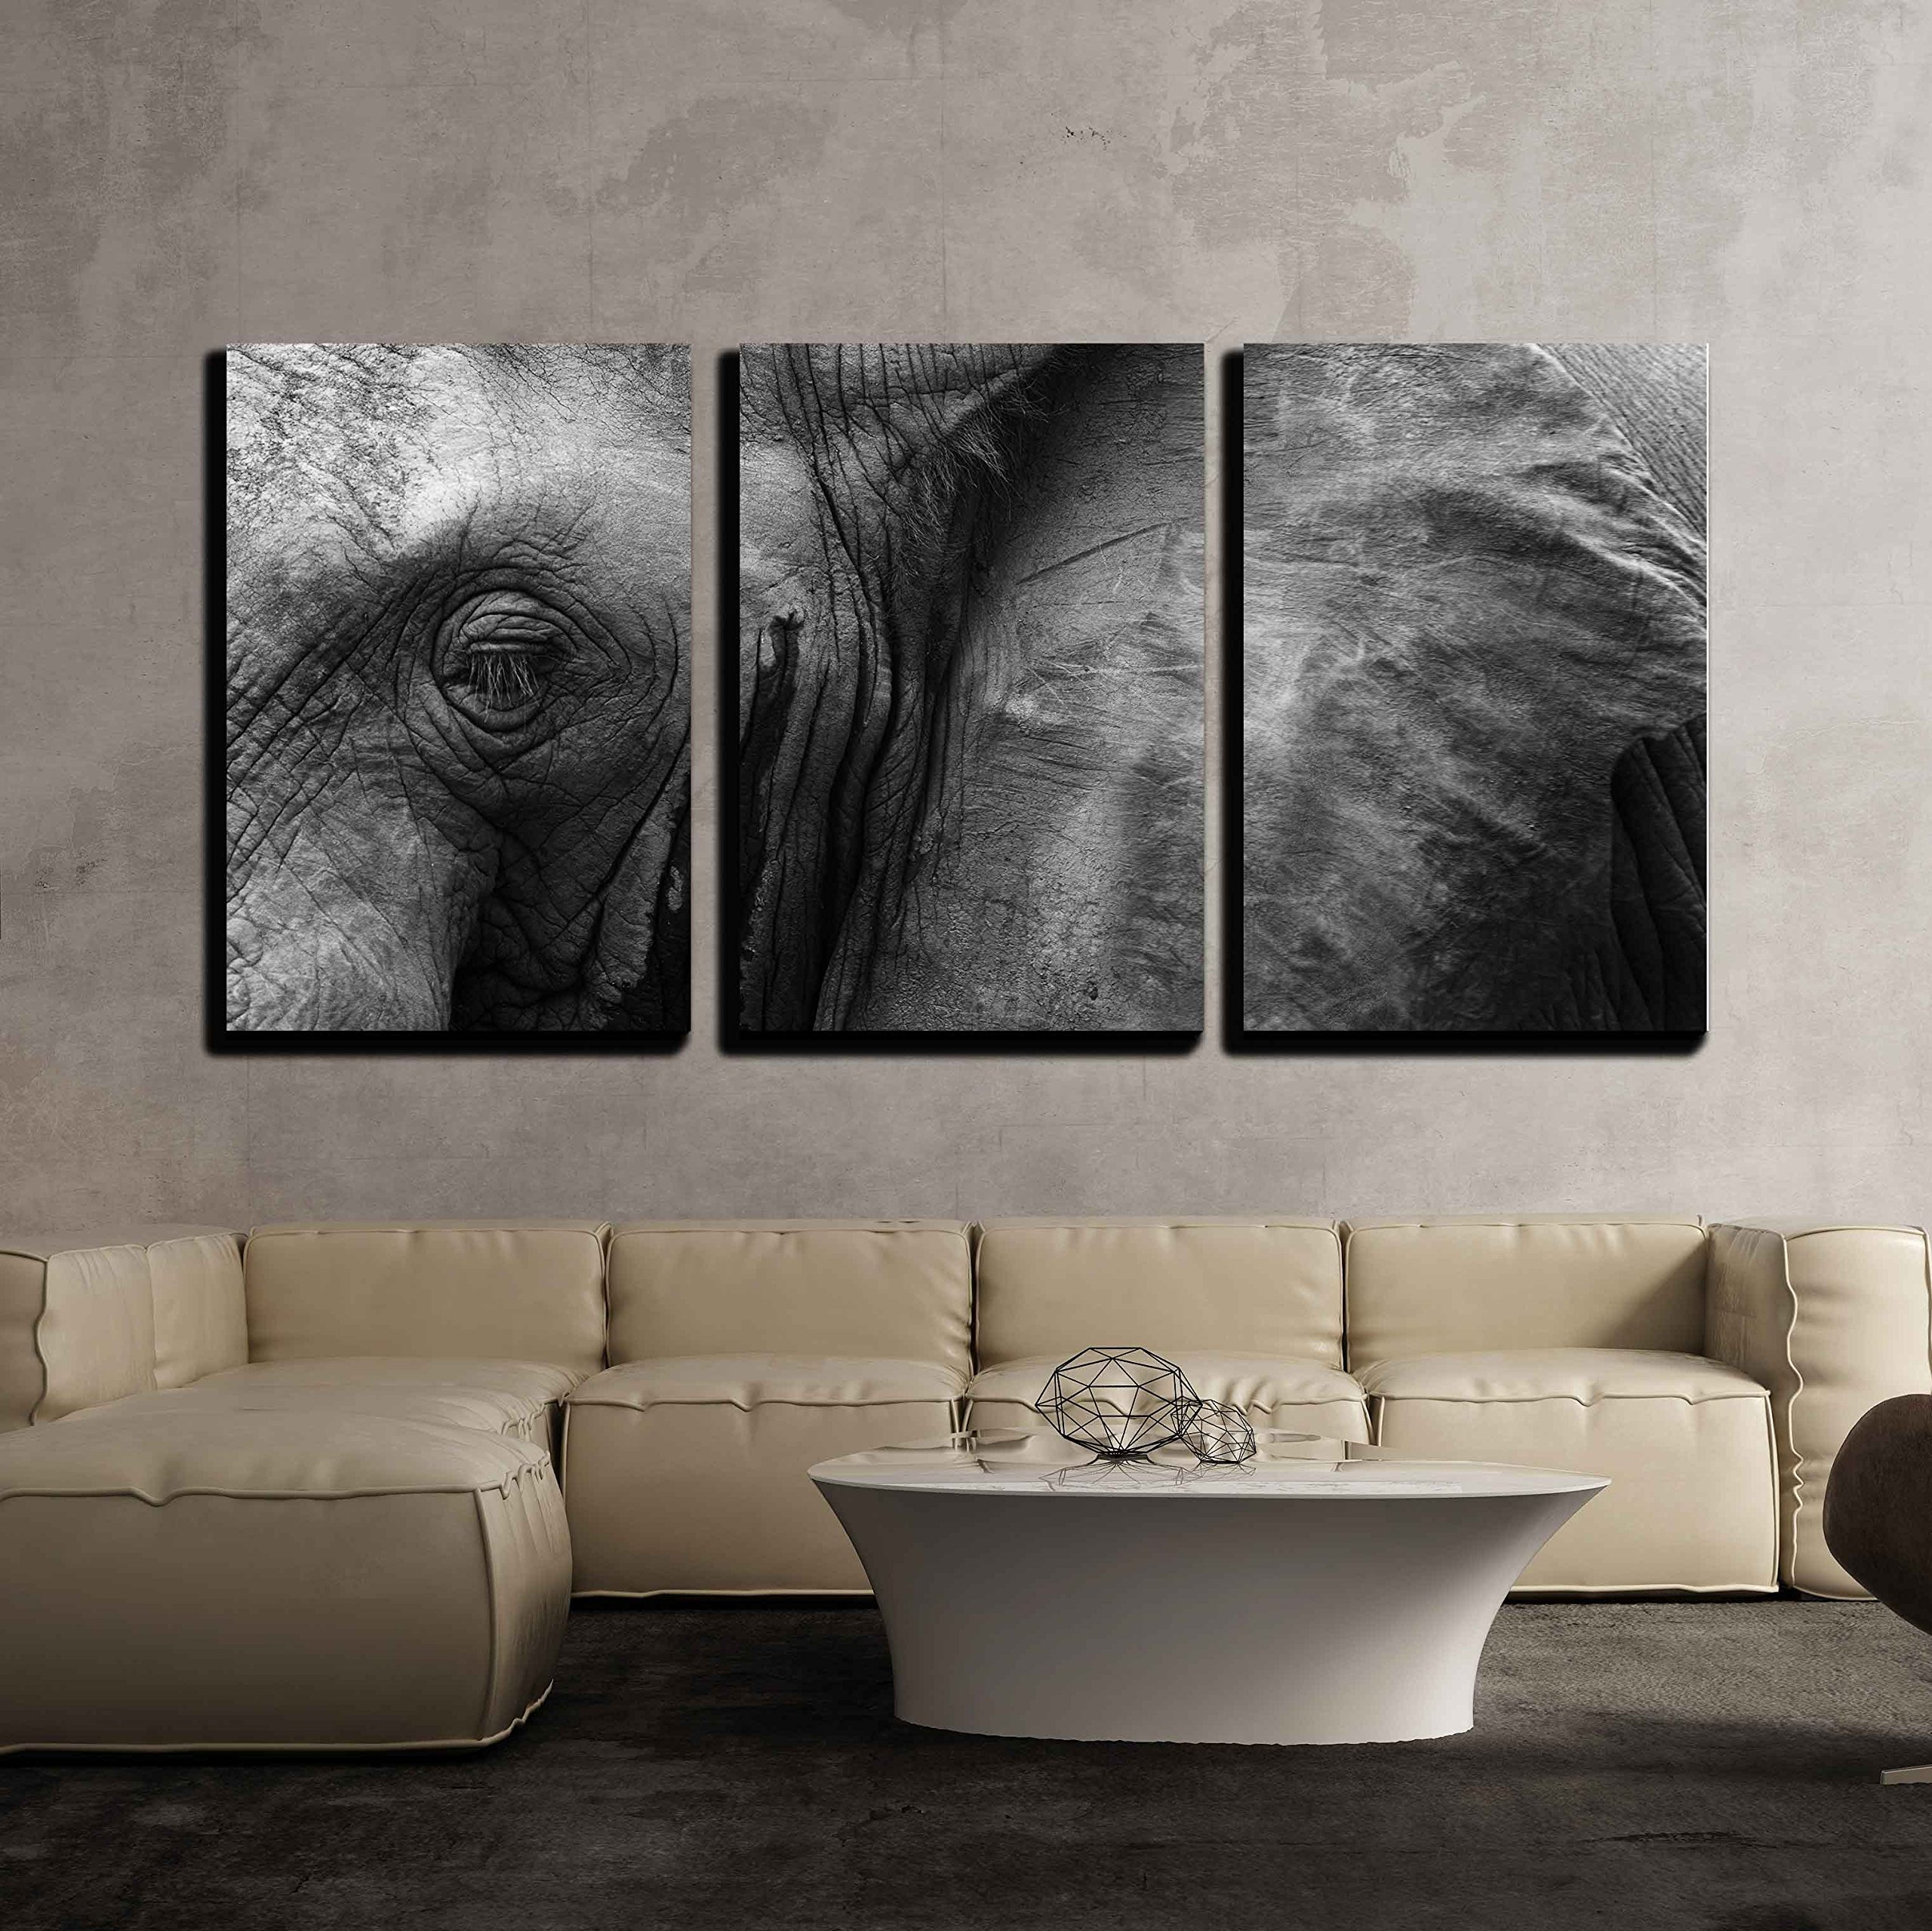 wall26 - 3 Piece Canvas Wall Art - Close Up Detail of an African Elephant Eye and Ear - Modern Home Decor Stretched and Framed Ready to Hang - 16''x24''x3 Panels